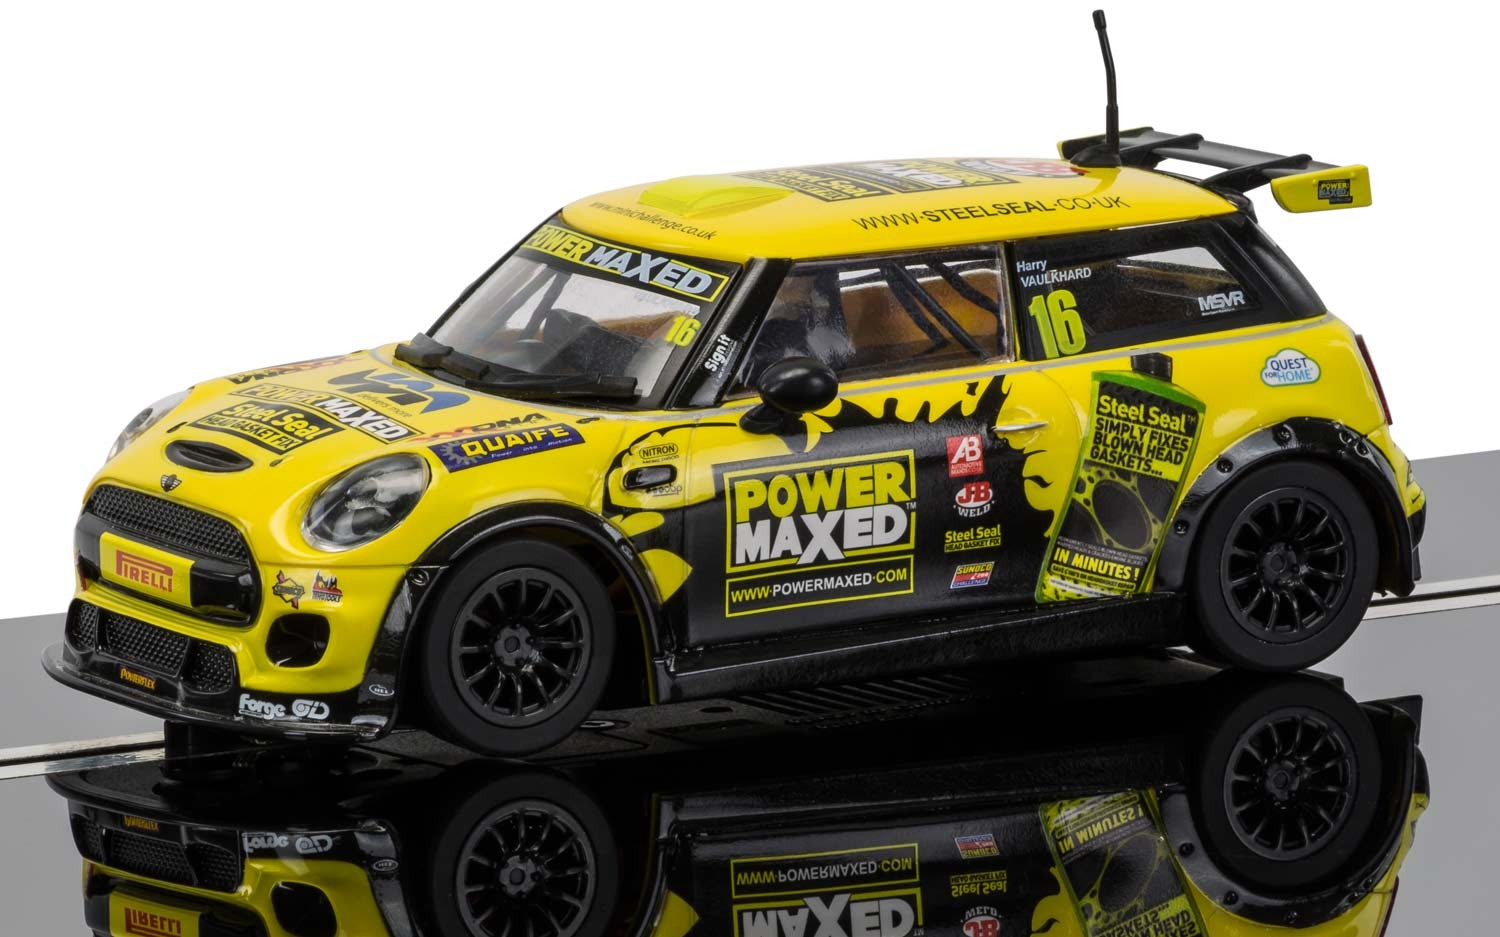 BMW MINI Cooper F56 - MINI Challenge 2015 Harry Vaulkhard #16 1/32 Slot Car